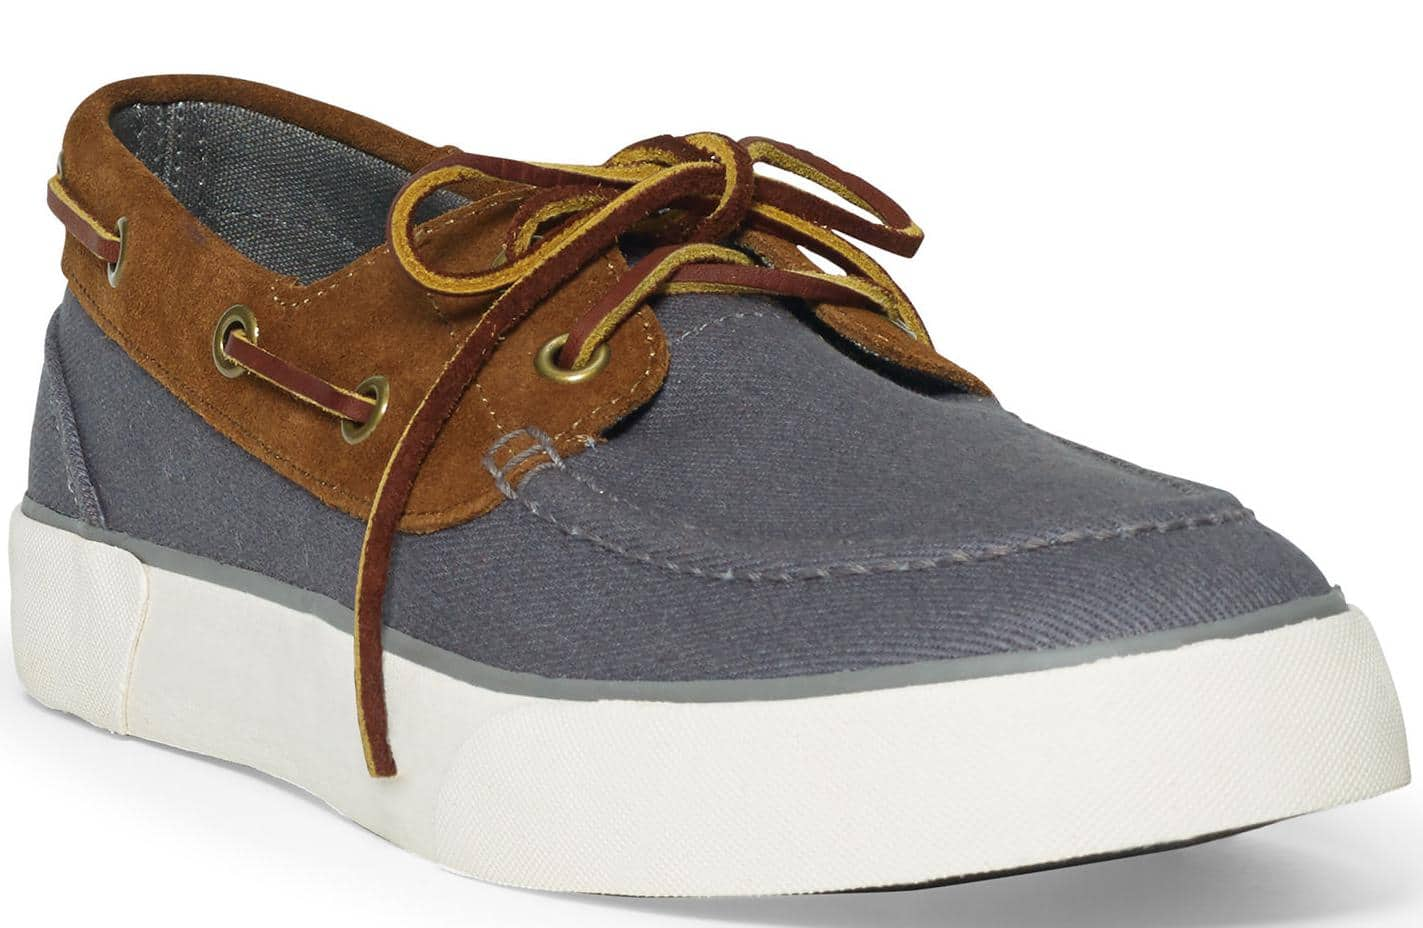 Polo Ralph Lauren Men's Sneakers (Various Colors / Styles) $23.99 + Free Shipping